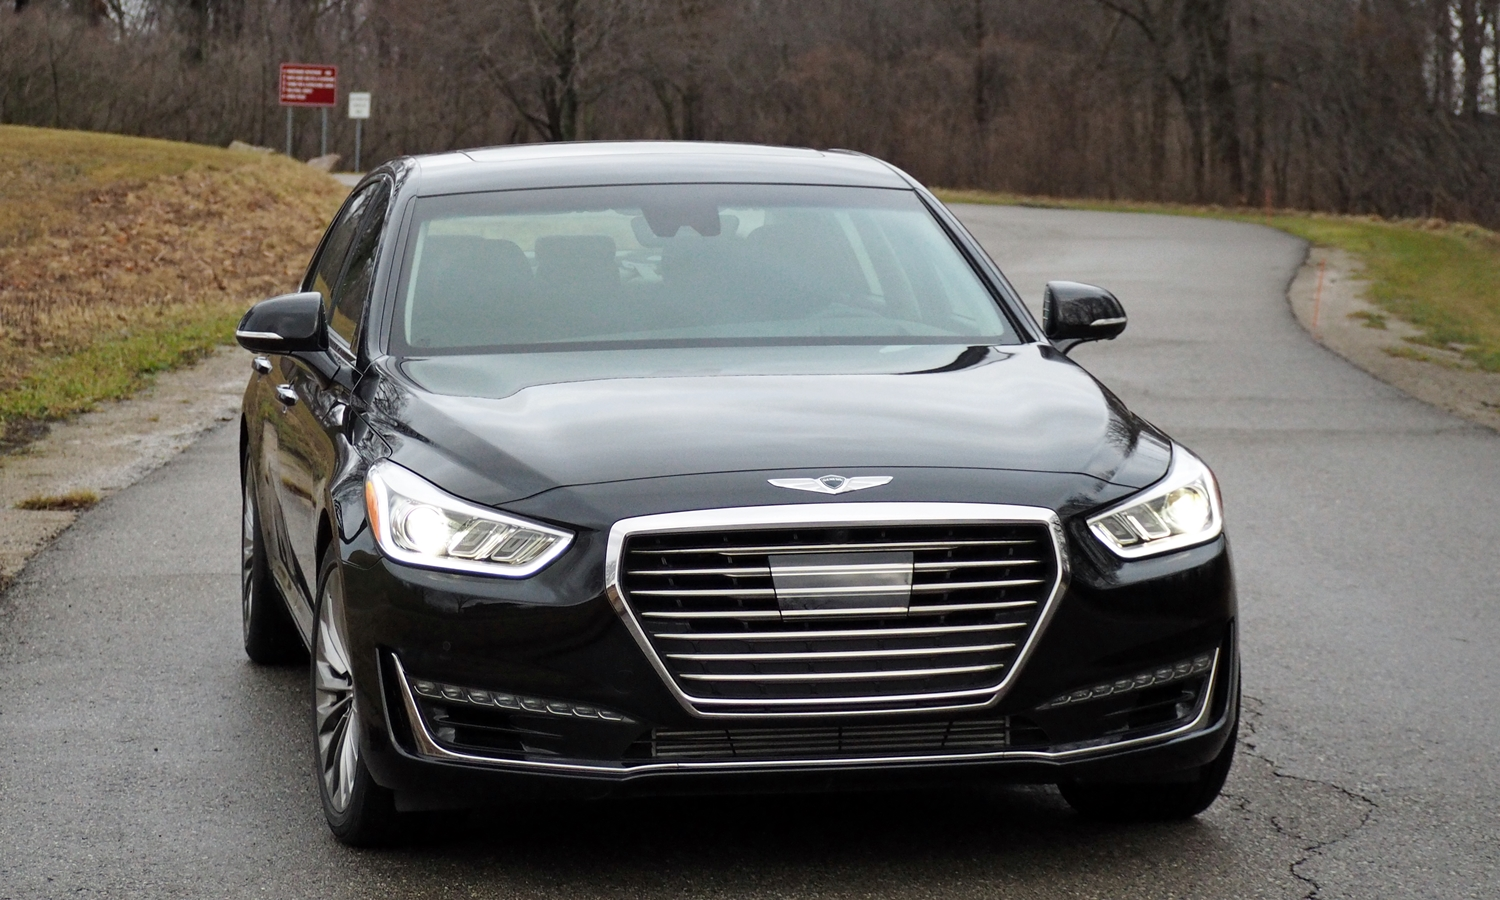 Genesis G90 Photos: 2017 Genesis G90 front view